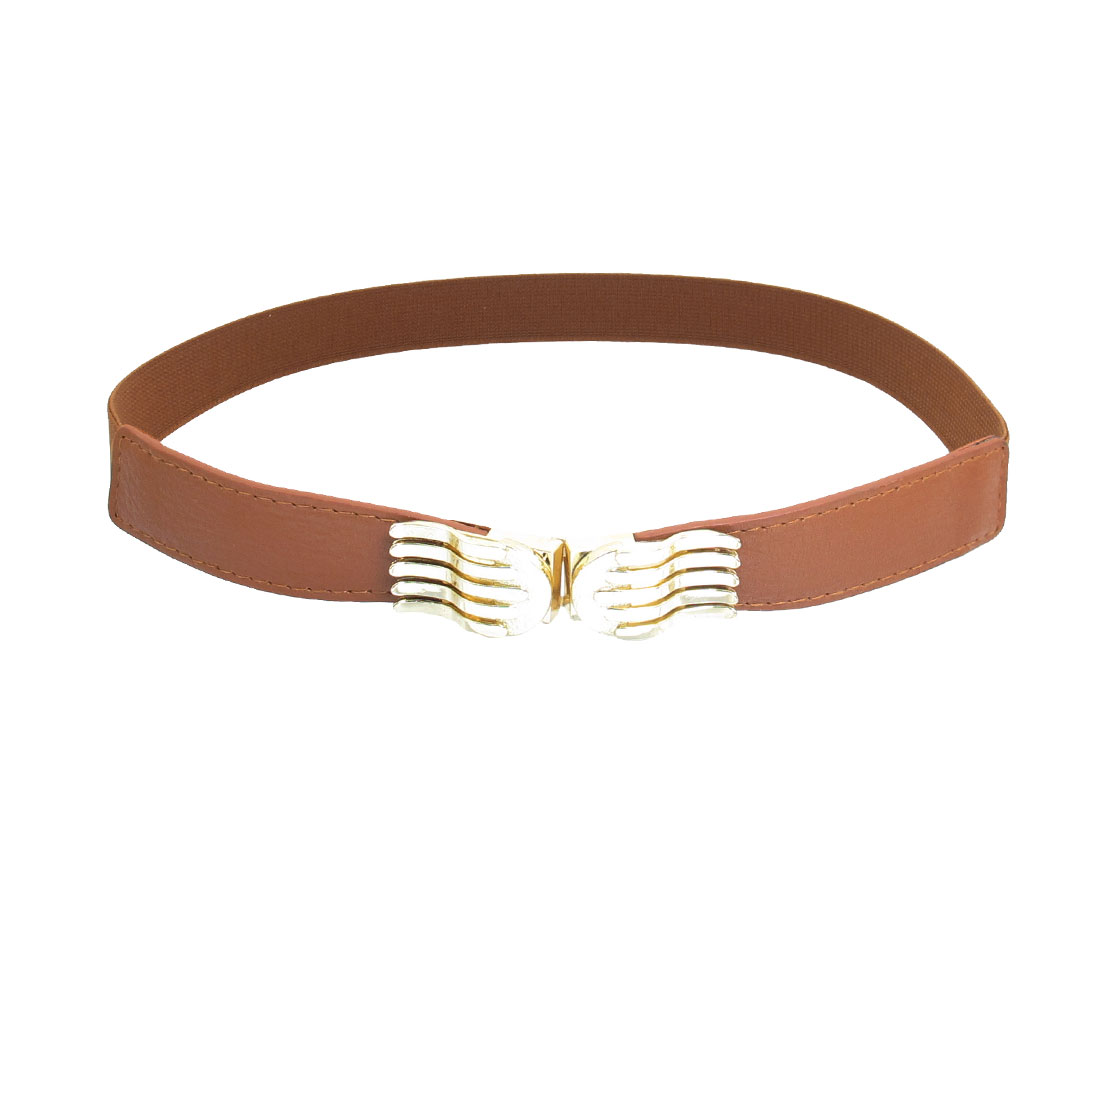 Brown Faux Leather Gold Tone Palm Shape Stretchy Waist Belt Cinch for Women